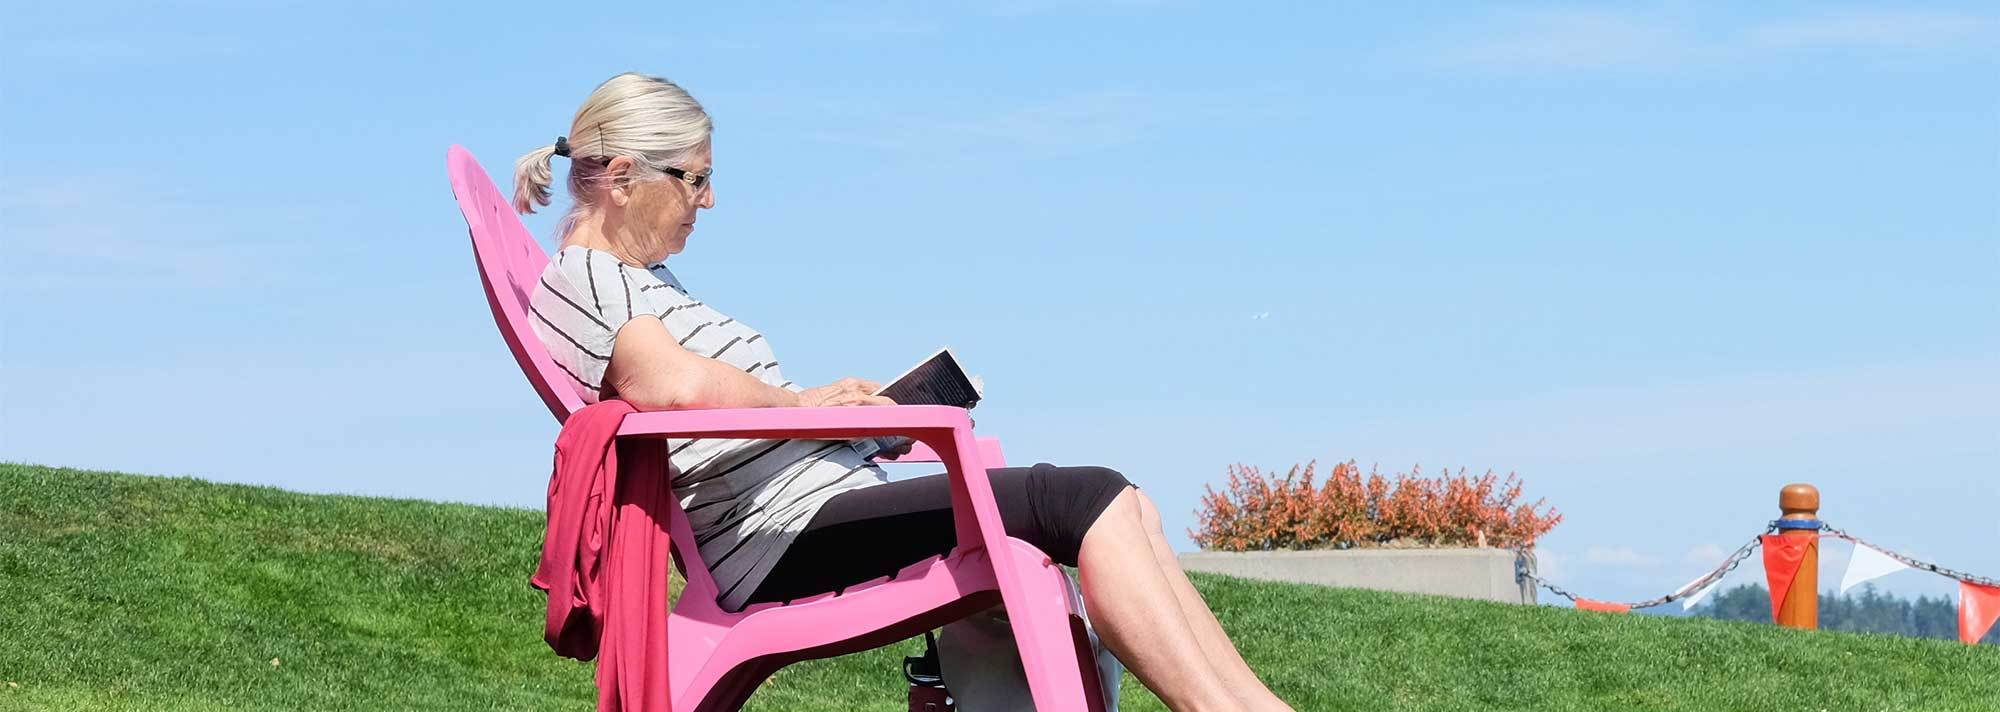 Retired woman is able to live the dream by relaxing outside on a pink lawn chair and reading a book